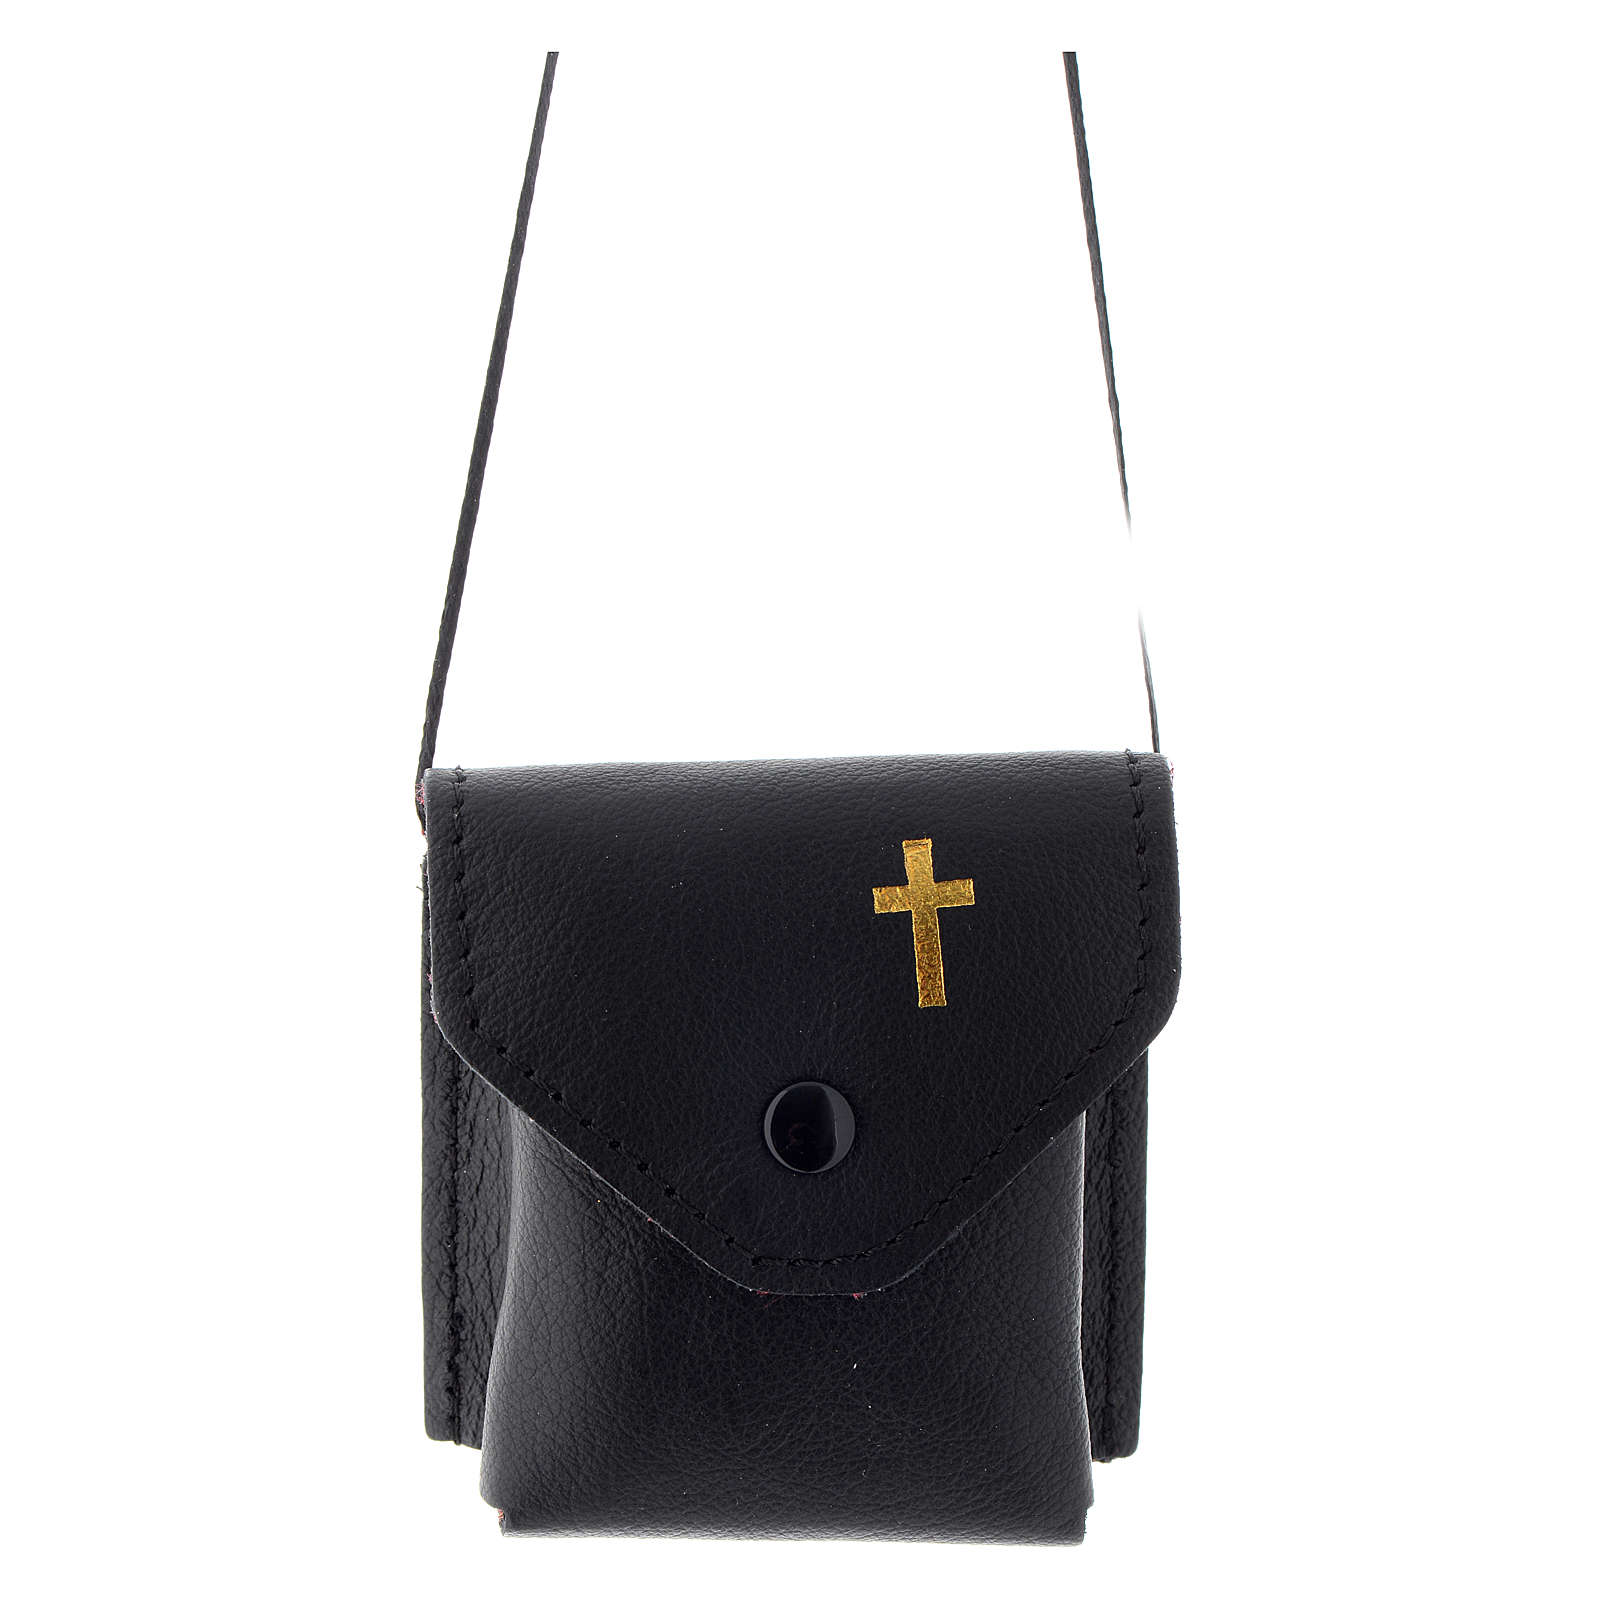 Pyx holder case in real leather, 7x7.5 cm, black 3